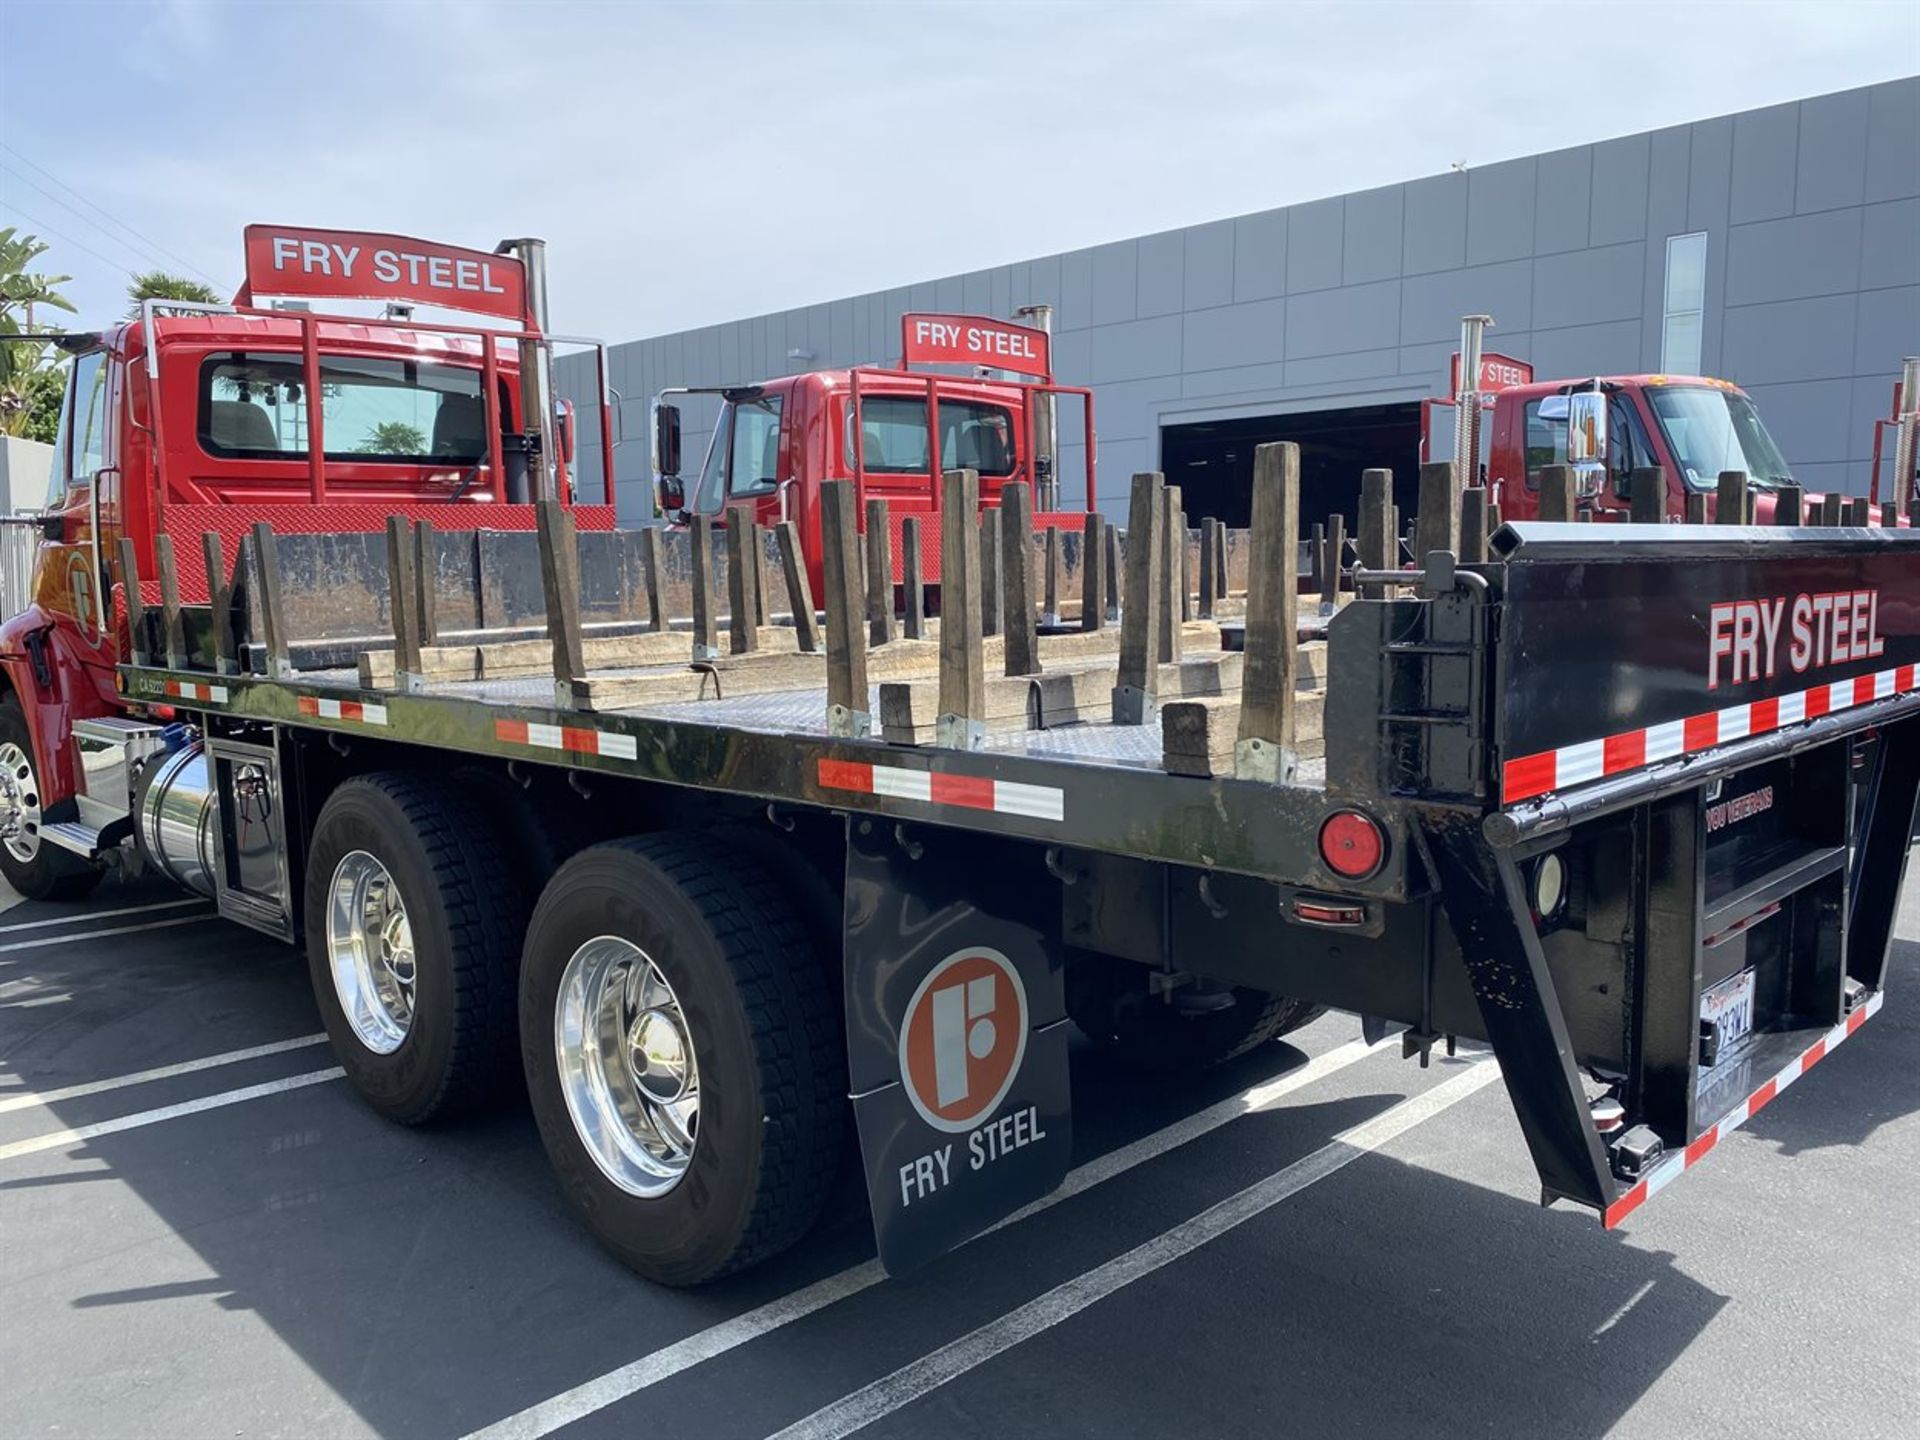 2016 INTERNATIONAL 18' Stake Bed Truck, VIN 3HTHXSNR6GN132508, 107,216 Miles at time of inspection - Image 2 of 18